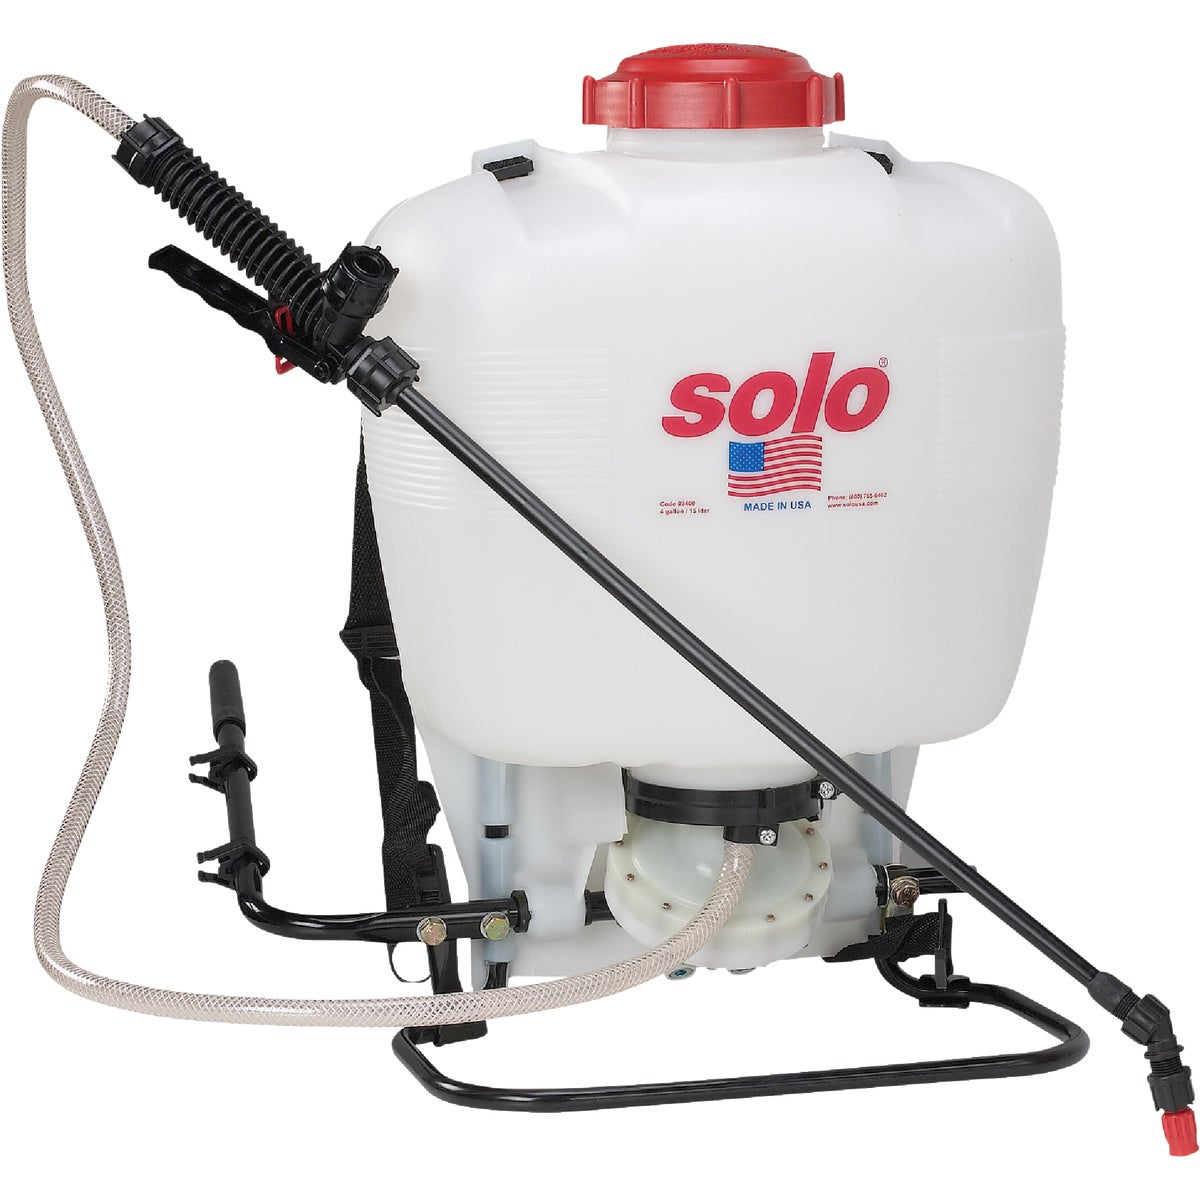 4 GL BACKPACK SPRAYER - 475-B by Solo Inc